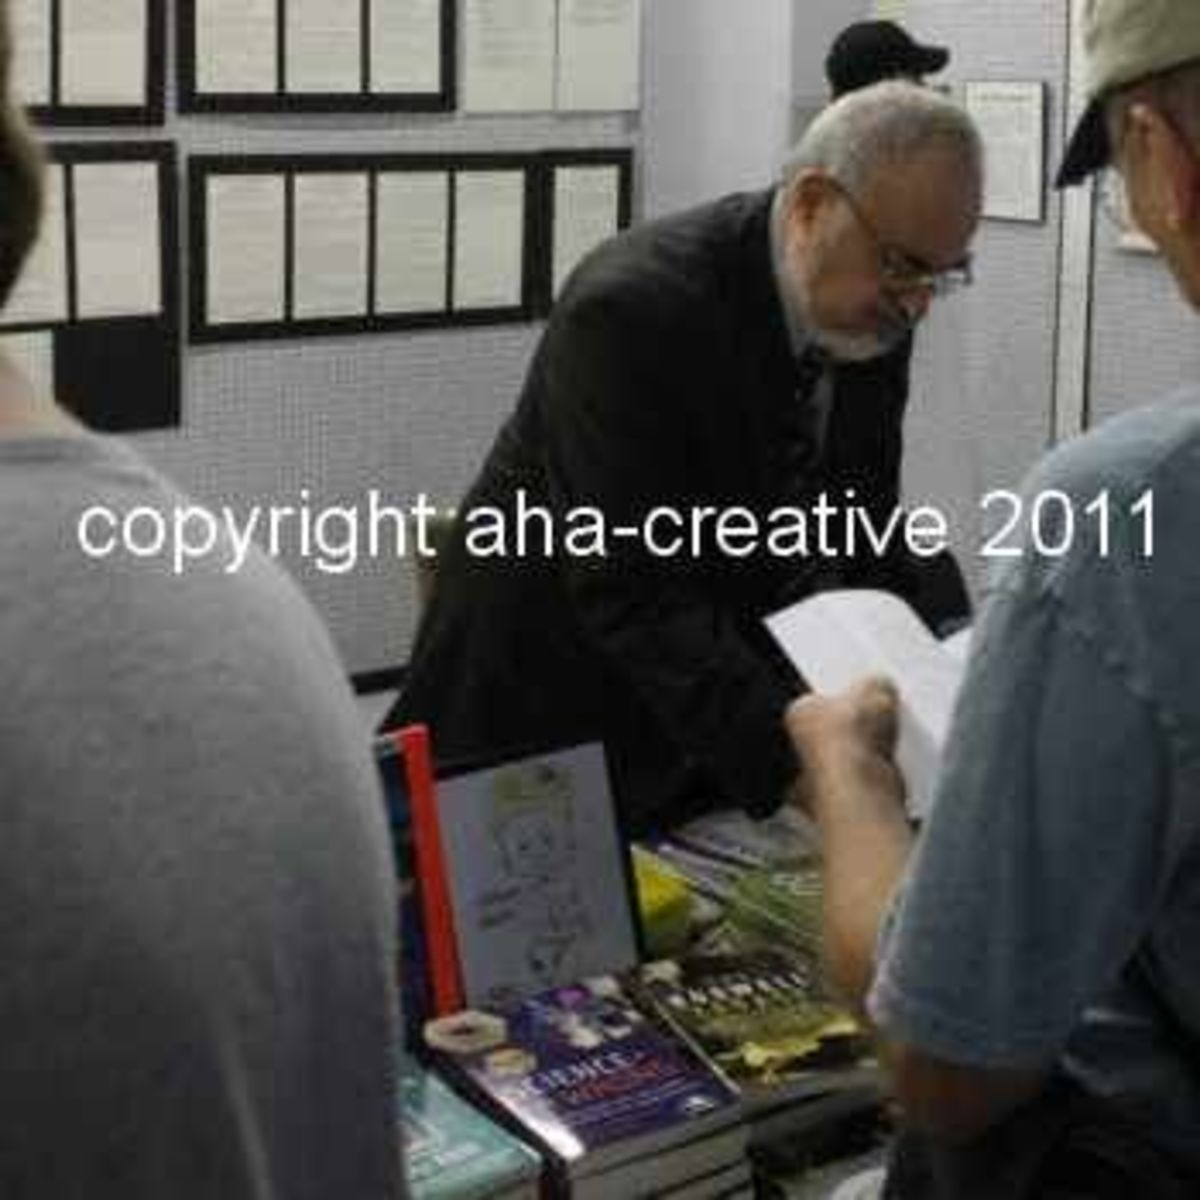 Stanton Friedman signing books at the 2011 Roswell UFO Festival